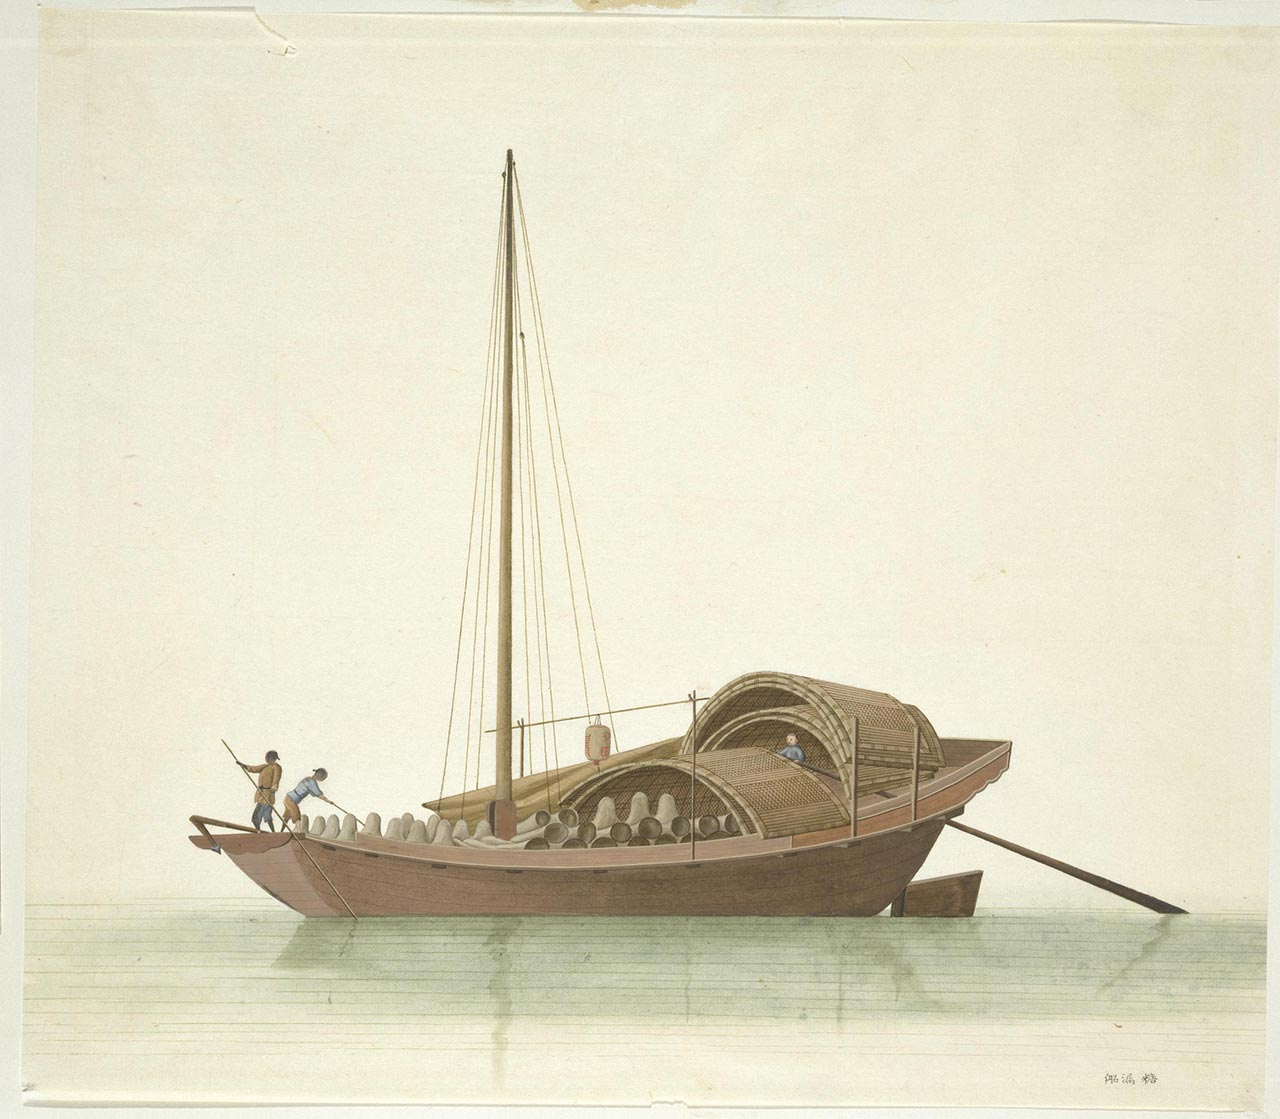 A boat that carried sugar funnels - cone-shaped vessels used in the production of sugar.